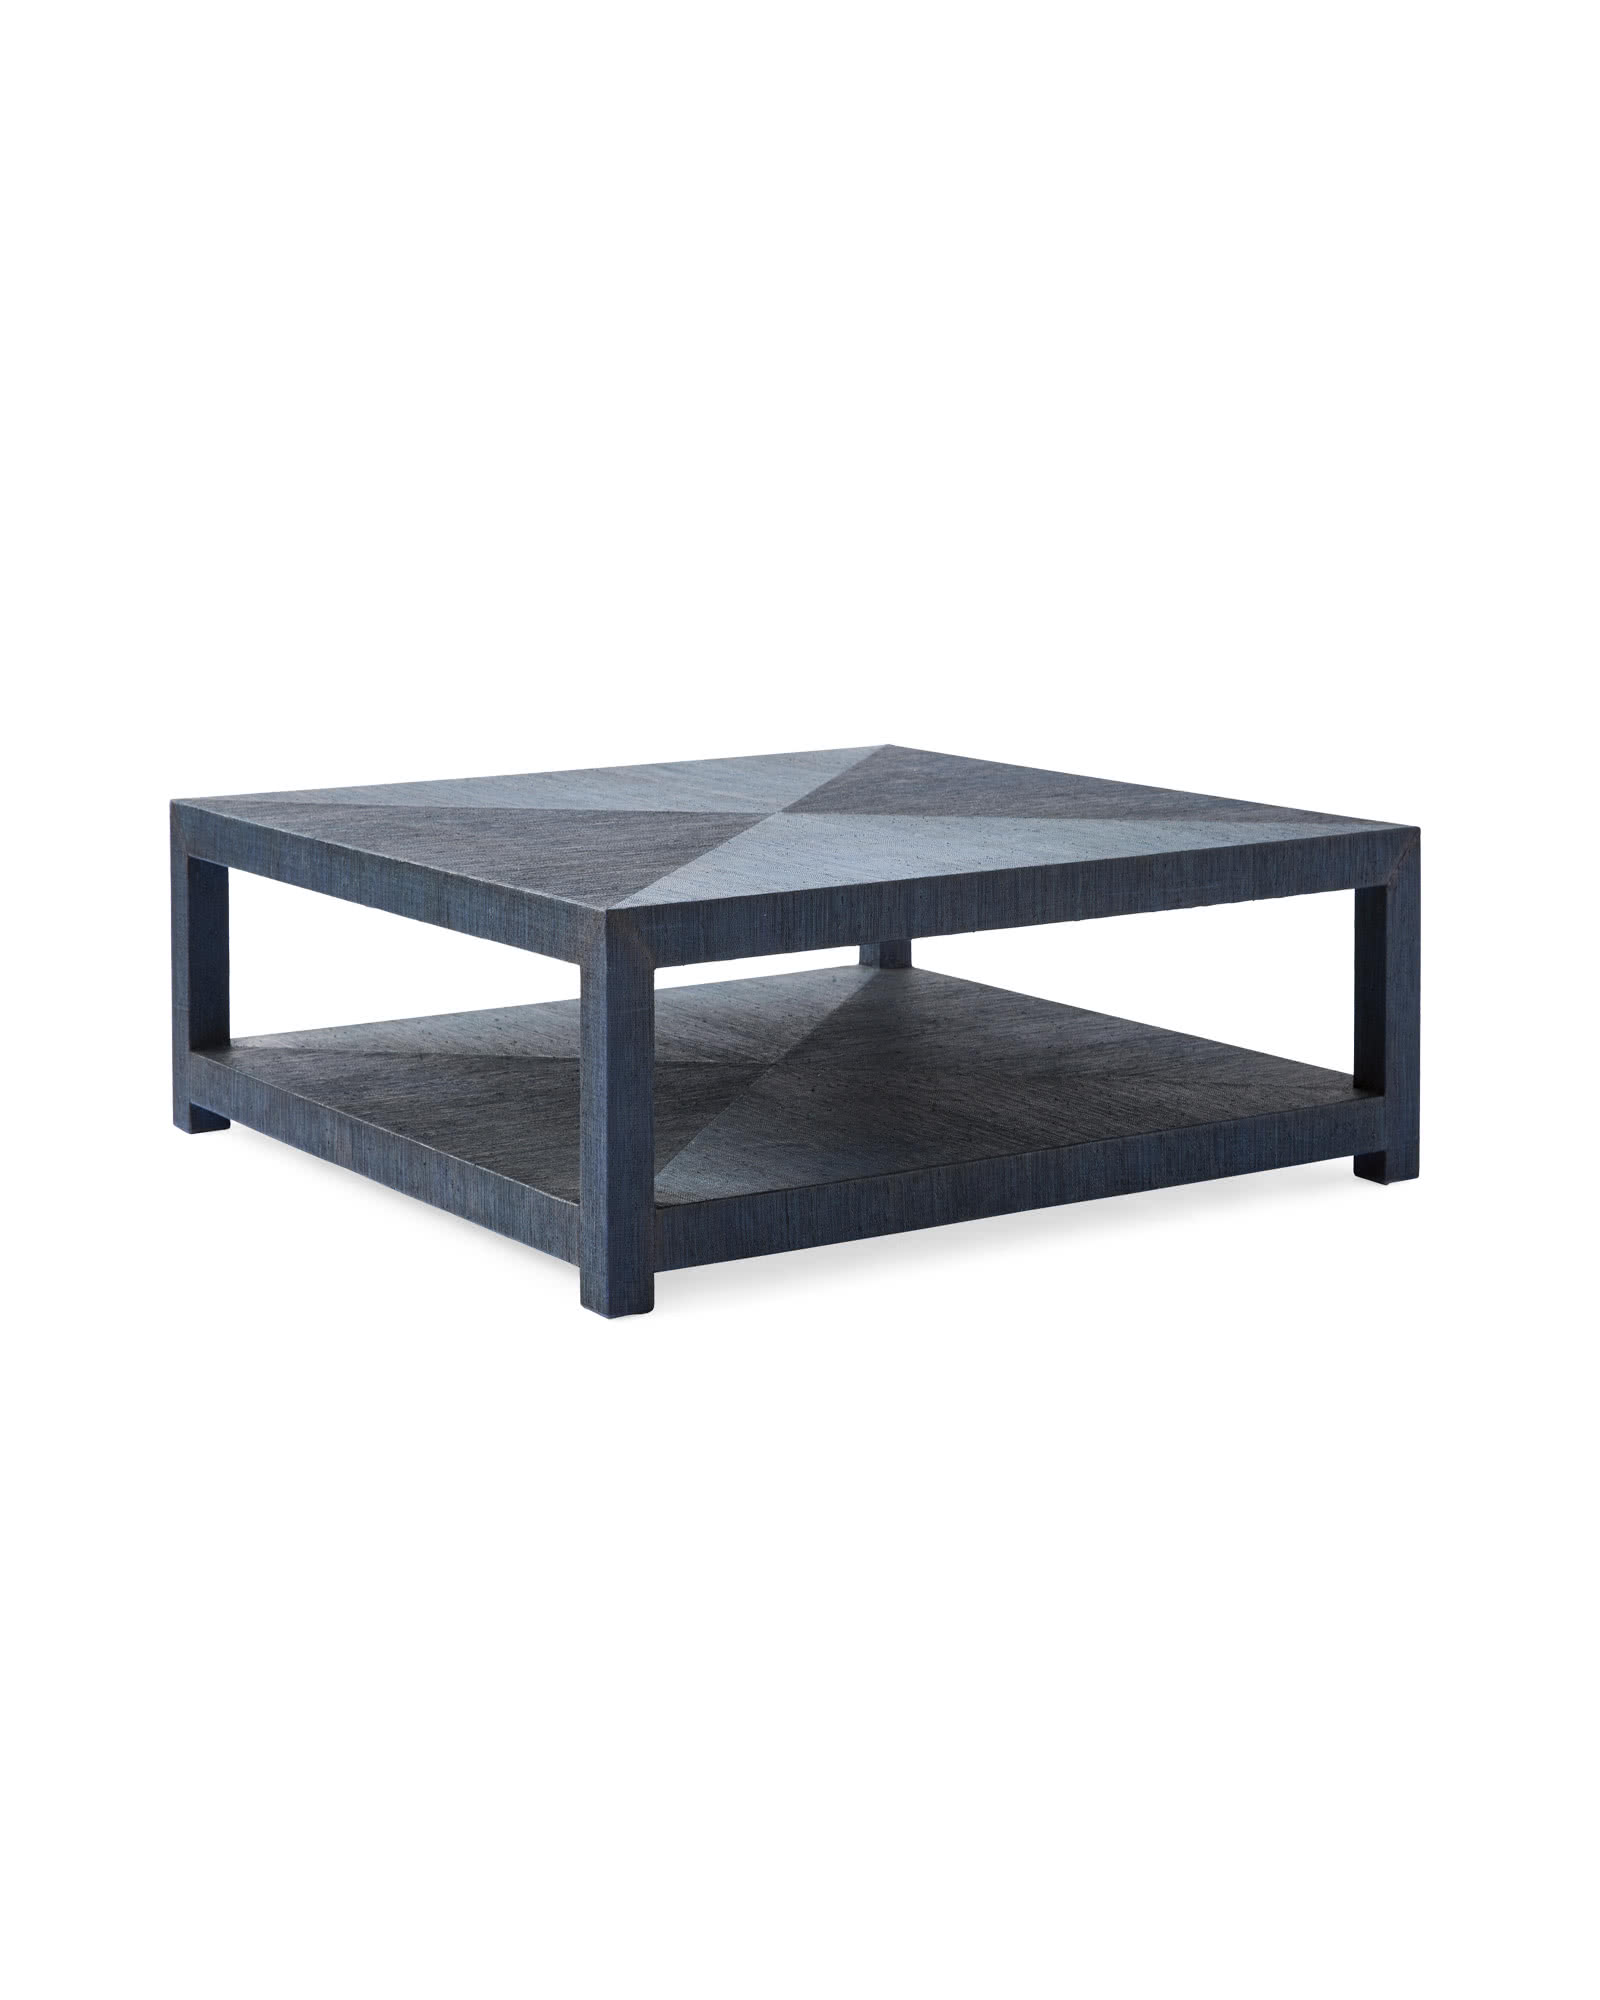 Blake Square Coffee Table, Indigo